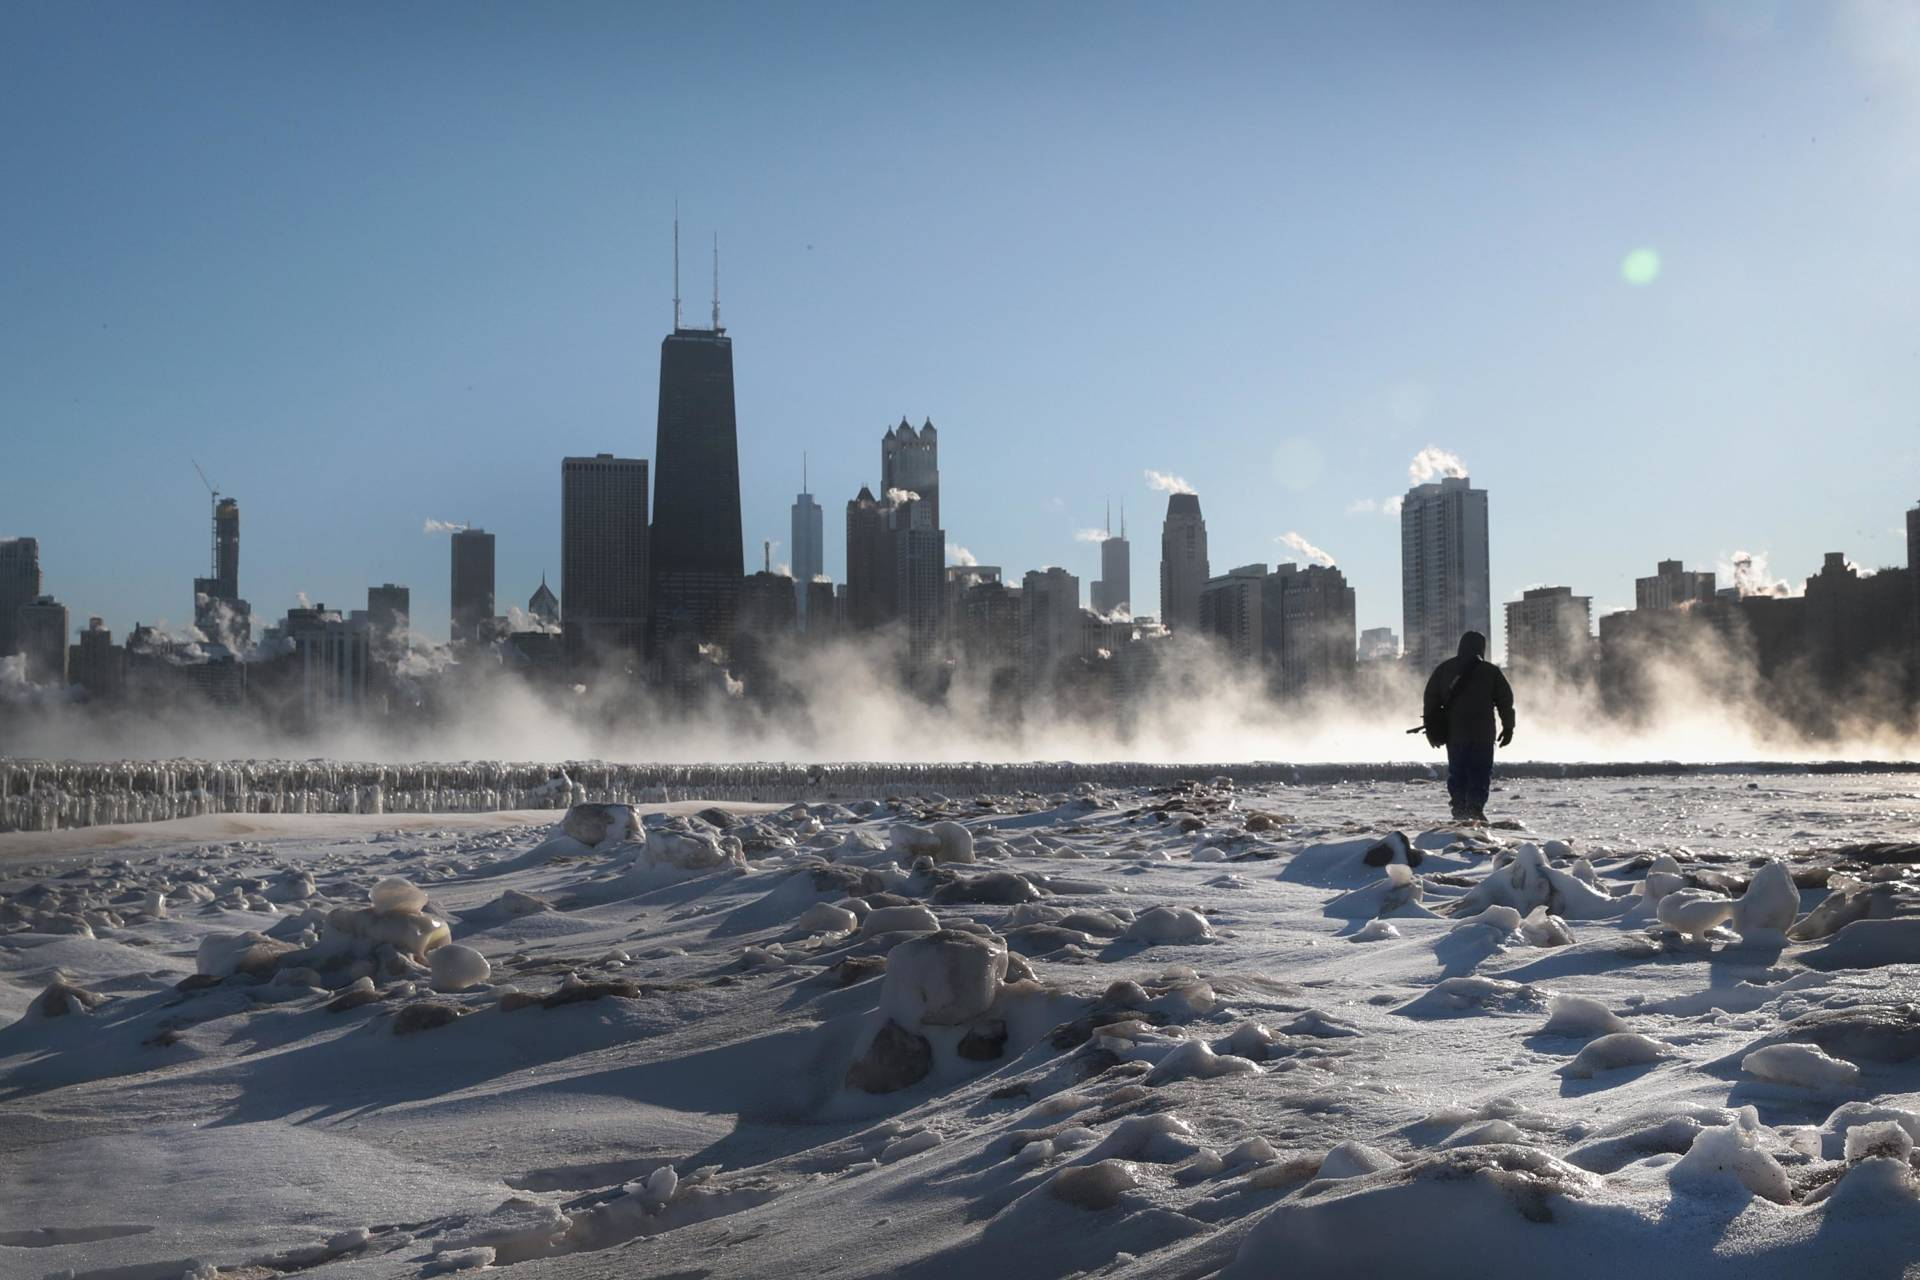 A man walks along the lakefront as temperatures hovered around -20 degrees on Jan. 30, 2019 in Chicago, Scott Olson/Getty Images